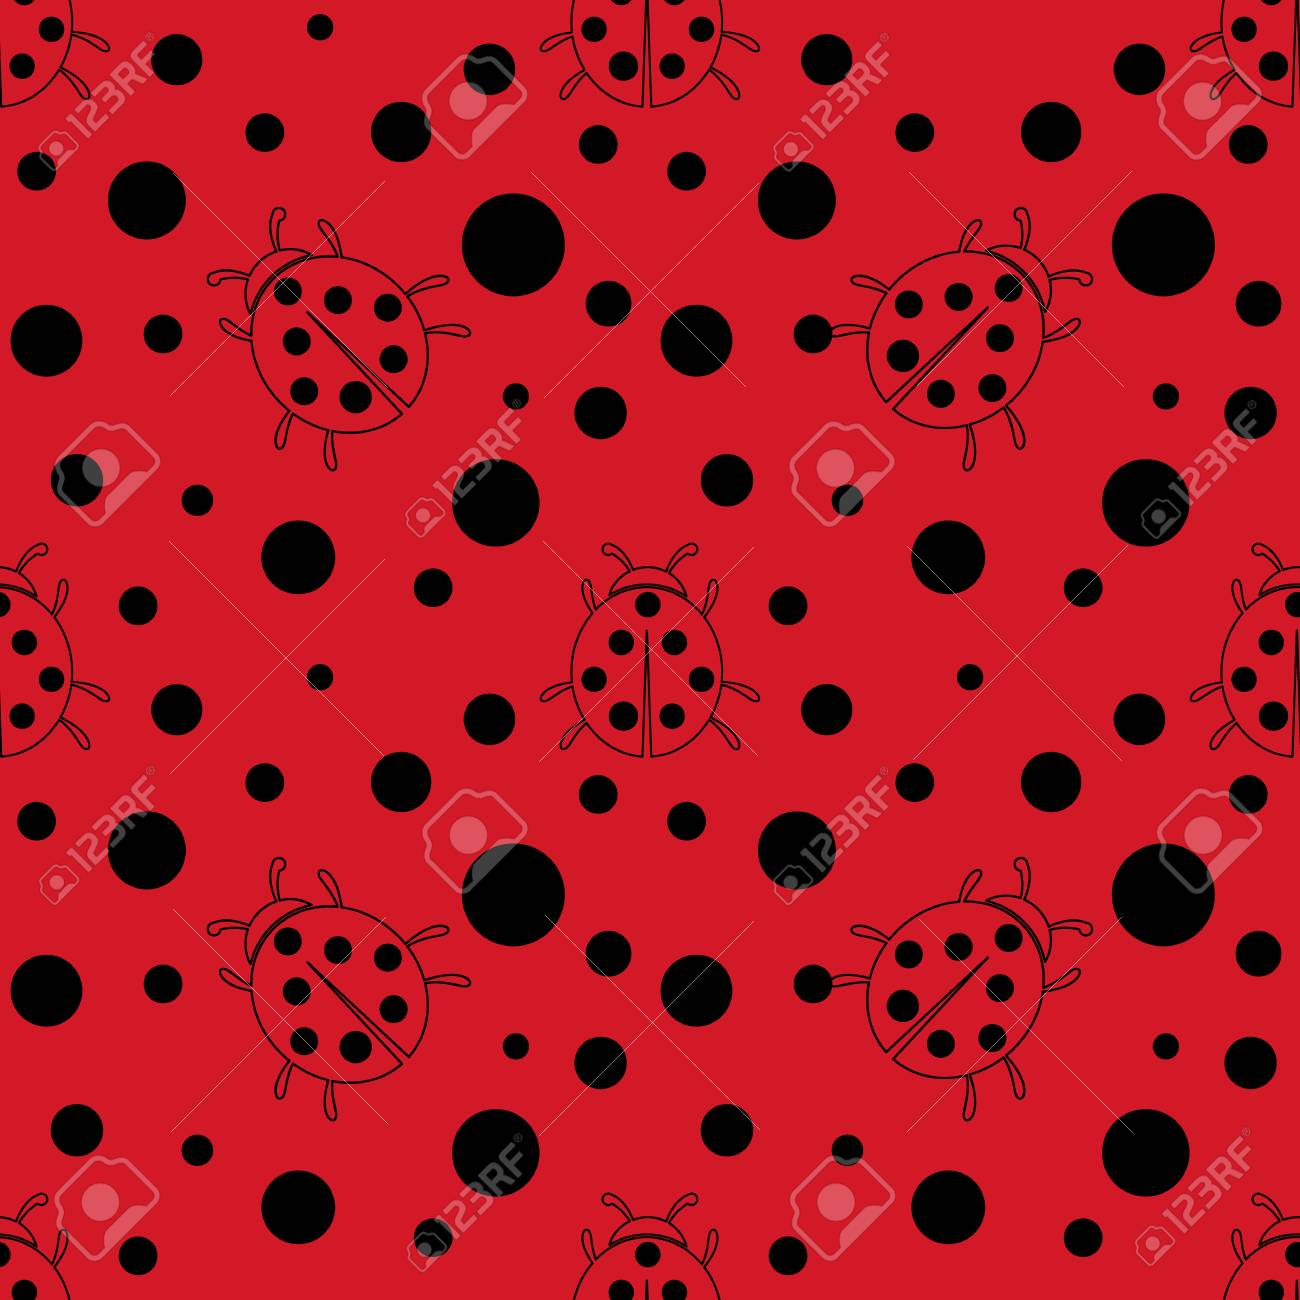 Seamless red and black dot pattern background  Ladybug or ladybird